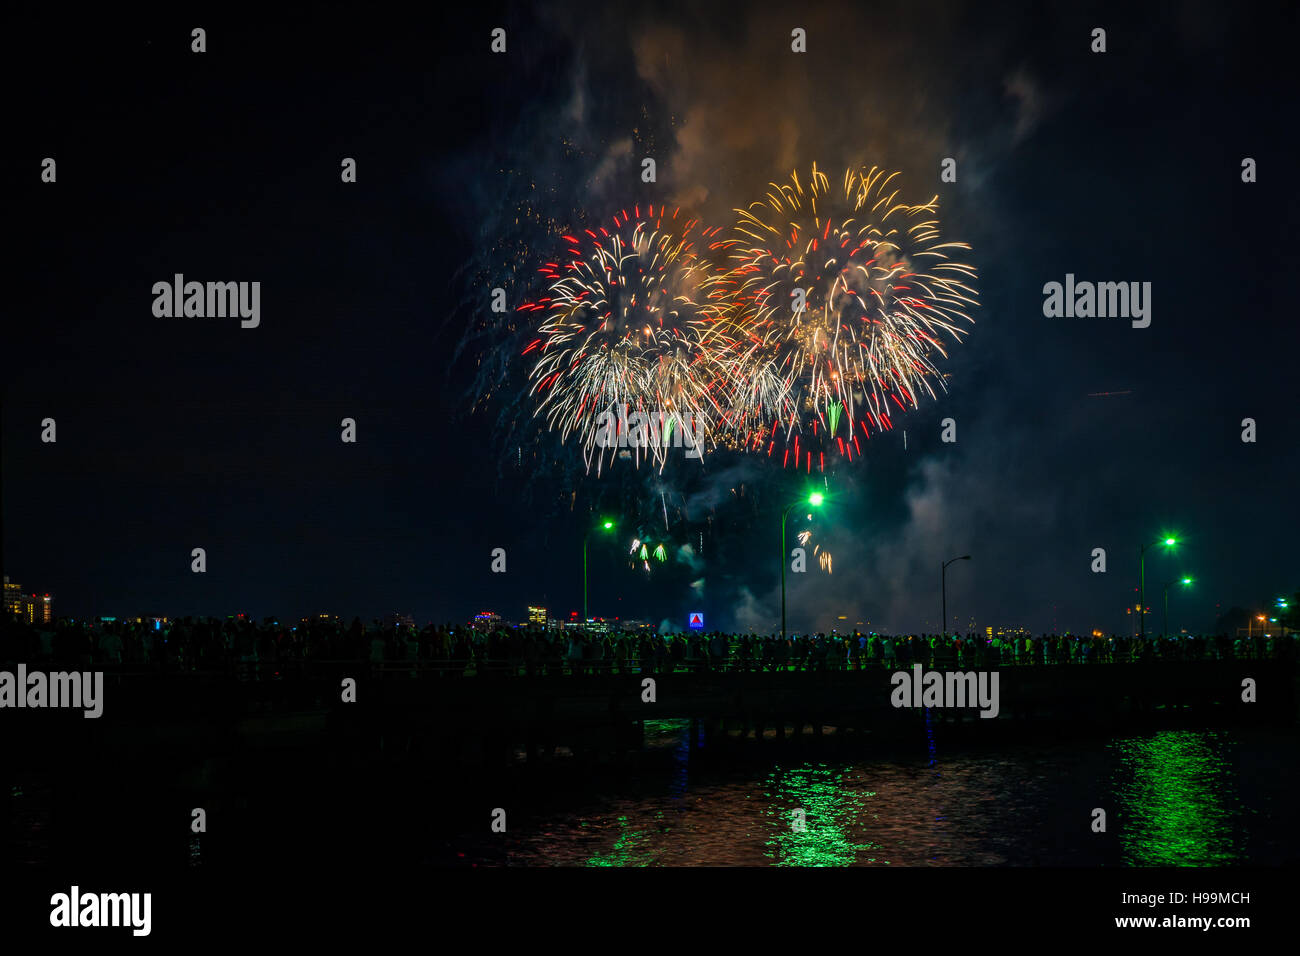 Fourth of July fireworks over the Broad Canal at night, in Cambridge, Massachusetts. Stock Photo